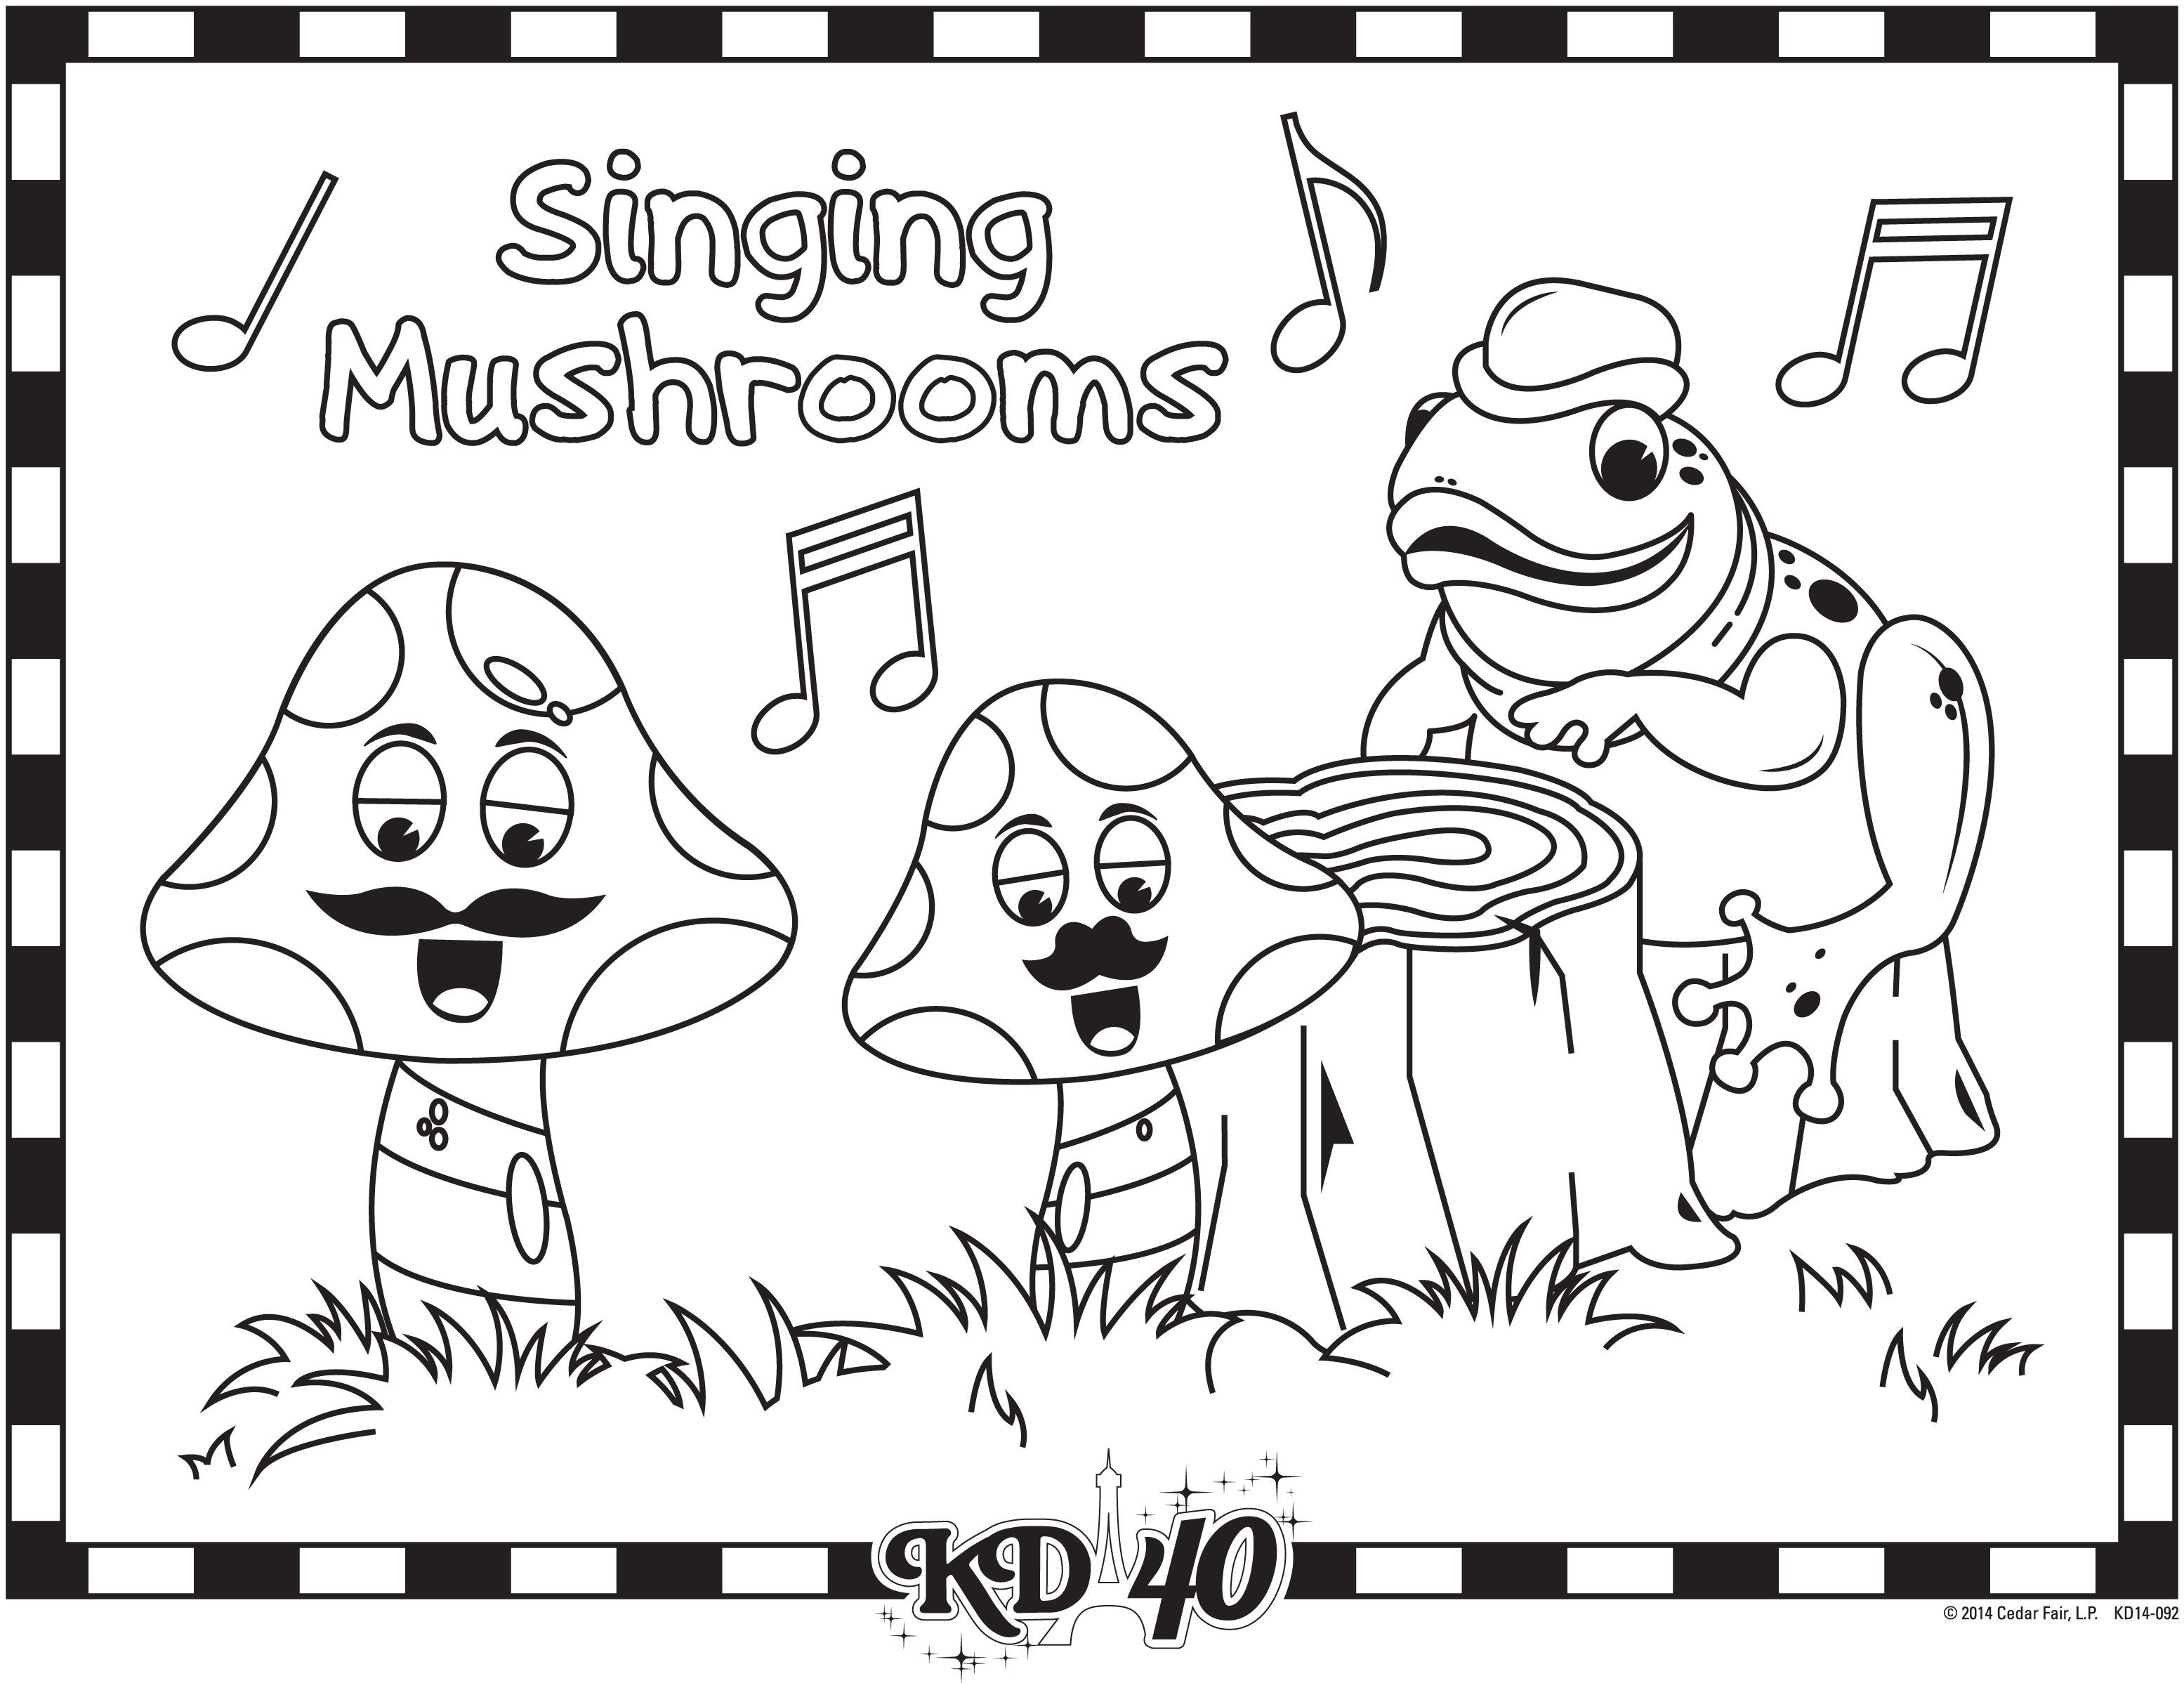 kings dominion singing mushrooms coloring pages color pages